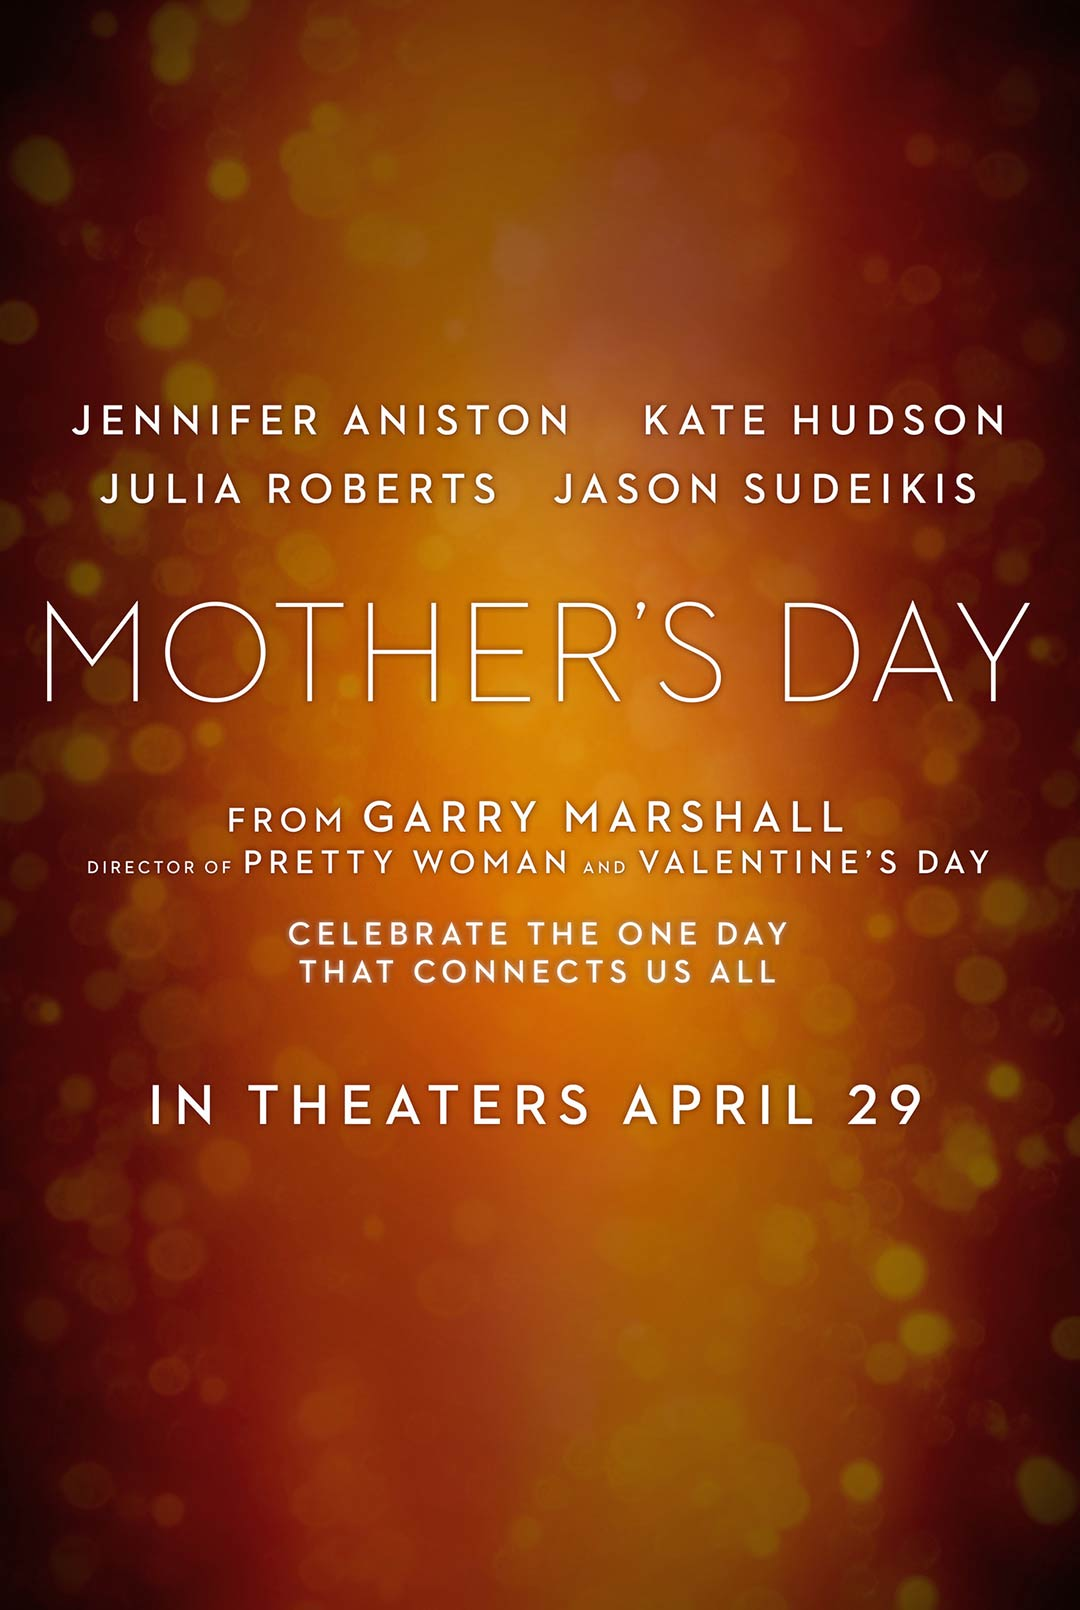 [Mother's Day poster]